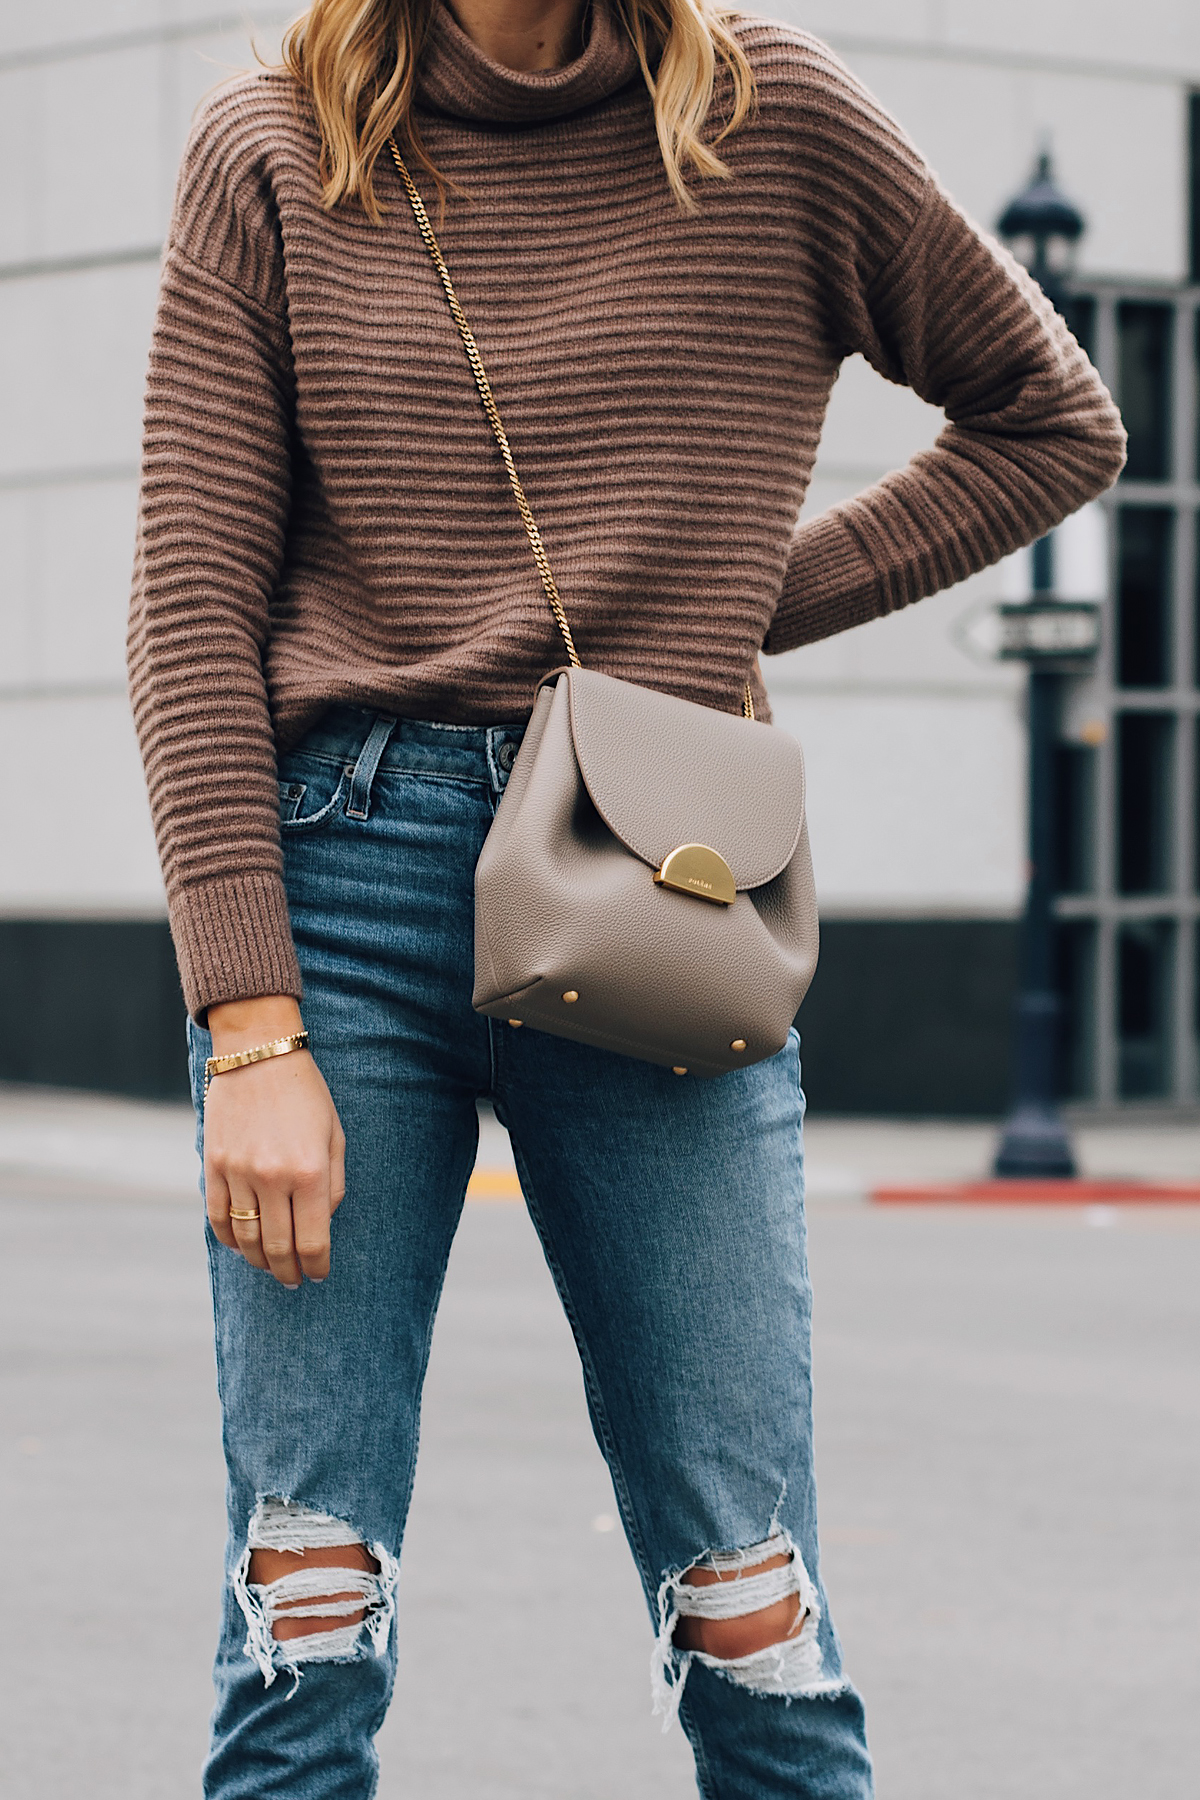 Blonde Woman Wearing Madewell Brown Mock Neck Sweater Paige Ripped Jeans Polene Grey Handbag Fashion Jackson San Diego Fashion Blogger Street Style